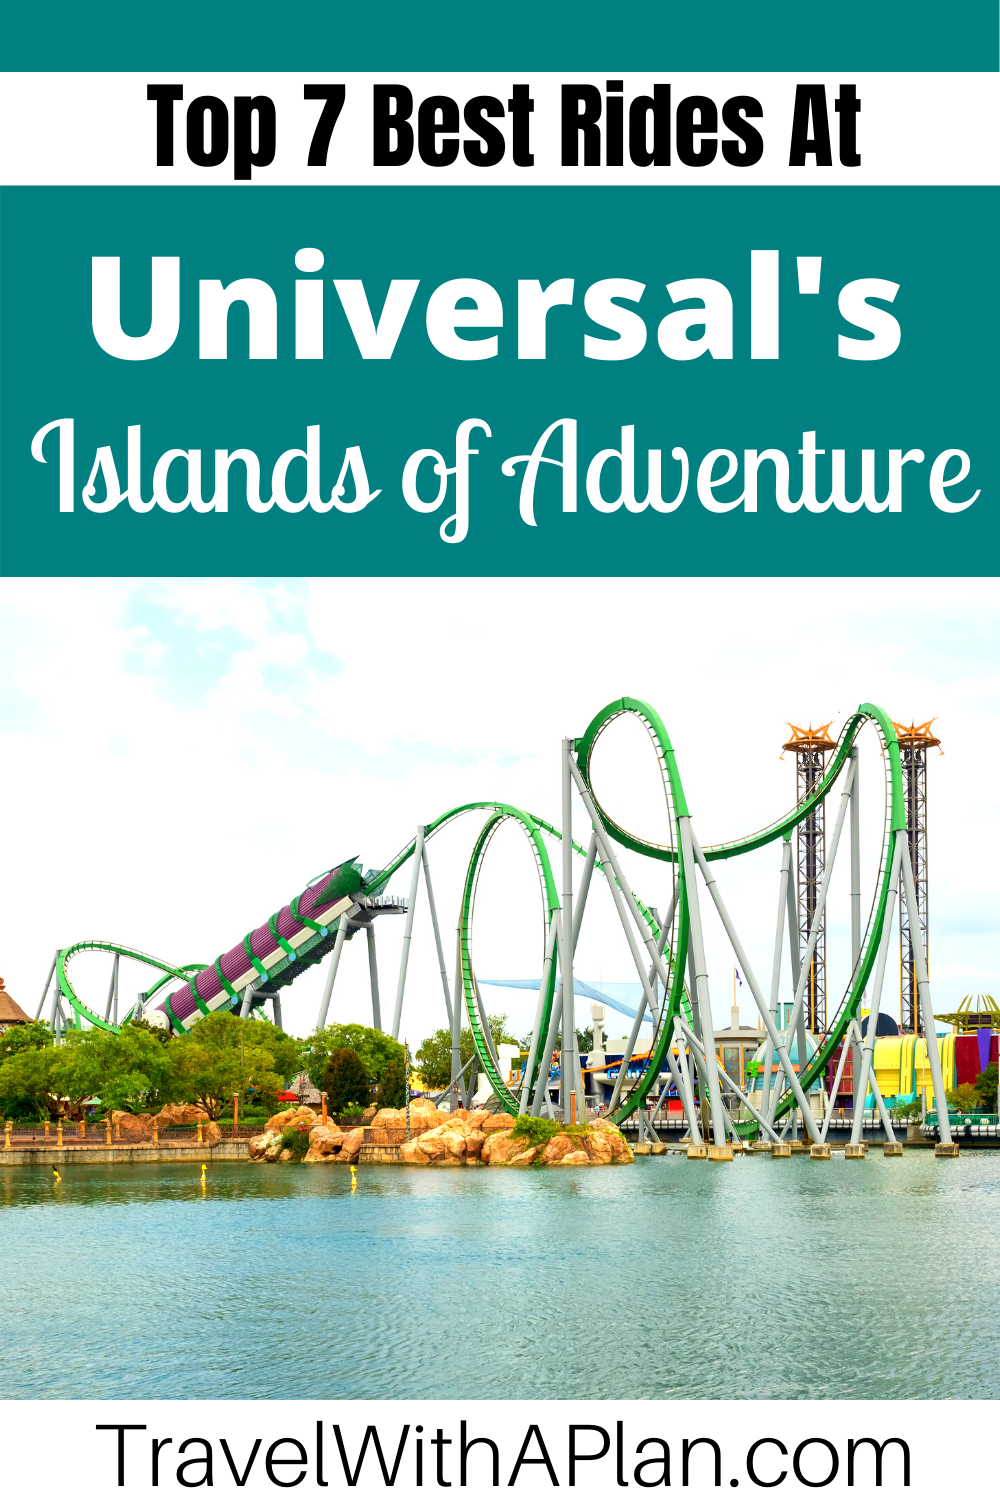 Top U.S. Family Travel Blog, Travel With A Plan, lets you in on the Top 7 Best Rides at Islands of Adventure.  Rated the #1 Theme Park in the world, Universal's Islands of Adventure provides an epic ride experience!  #islandsofadventuretoprides #bestridesatislandsofadventure #topridesatislandsofadventure #islandsofadventurerides #bestridesatUniversalOrlando